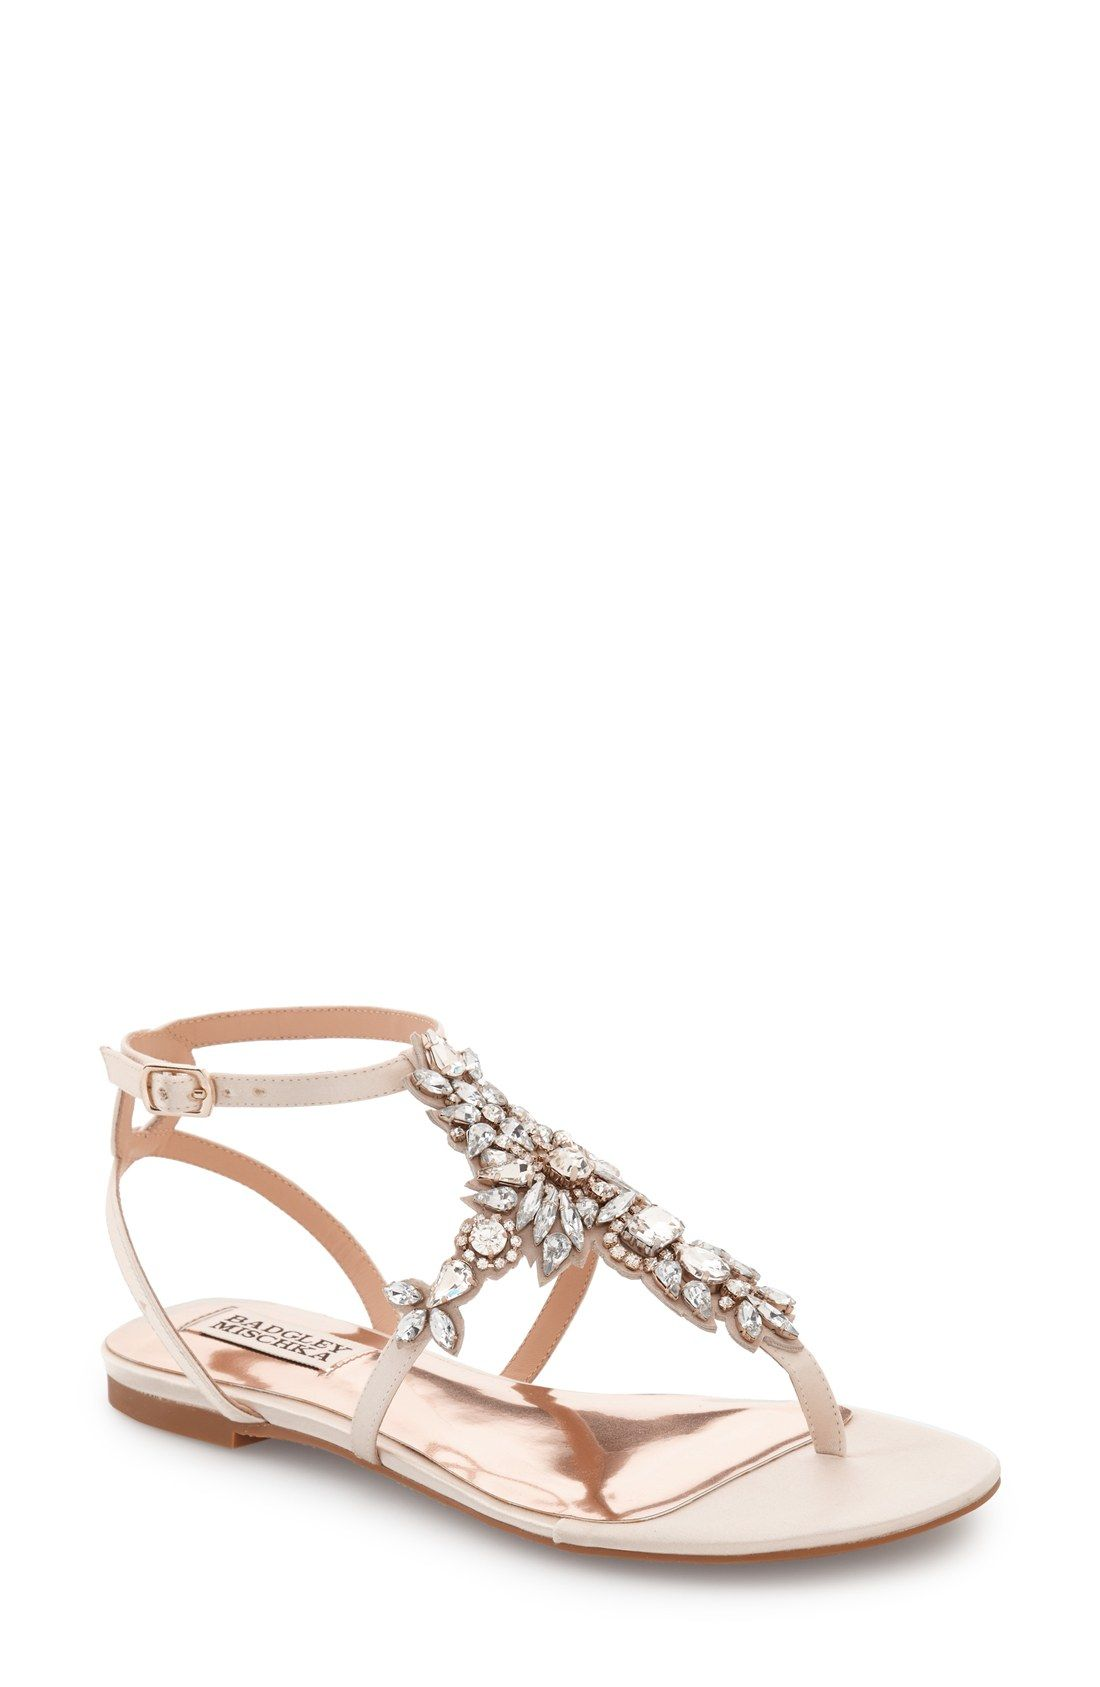 2fb24c318 Badgley Mischka  Cara  Crystal Embellished Flat Sandal (Women ...